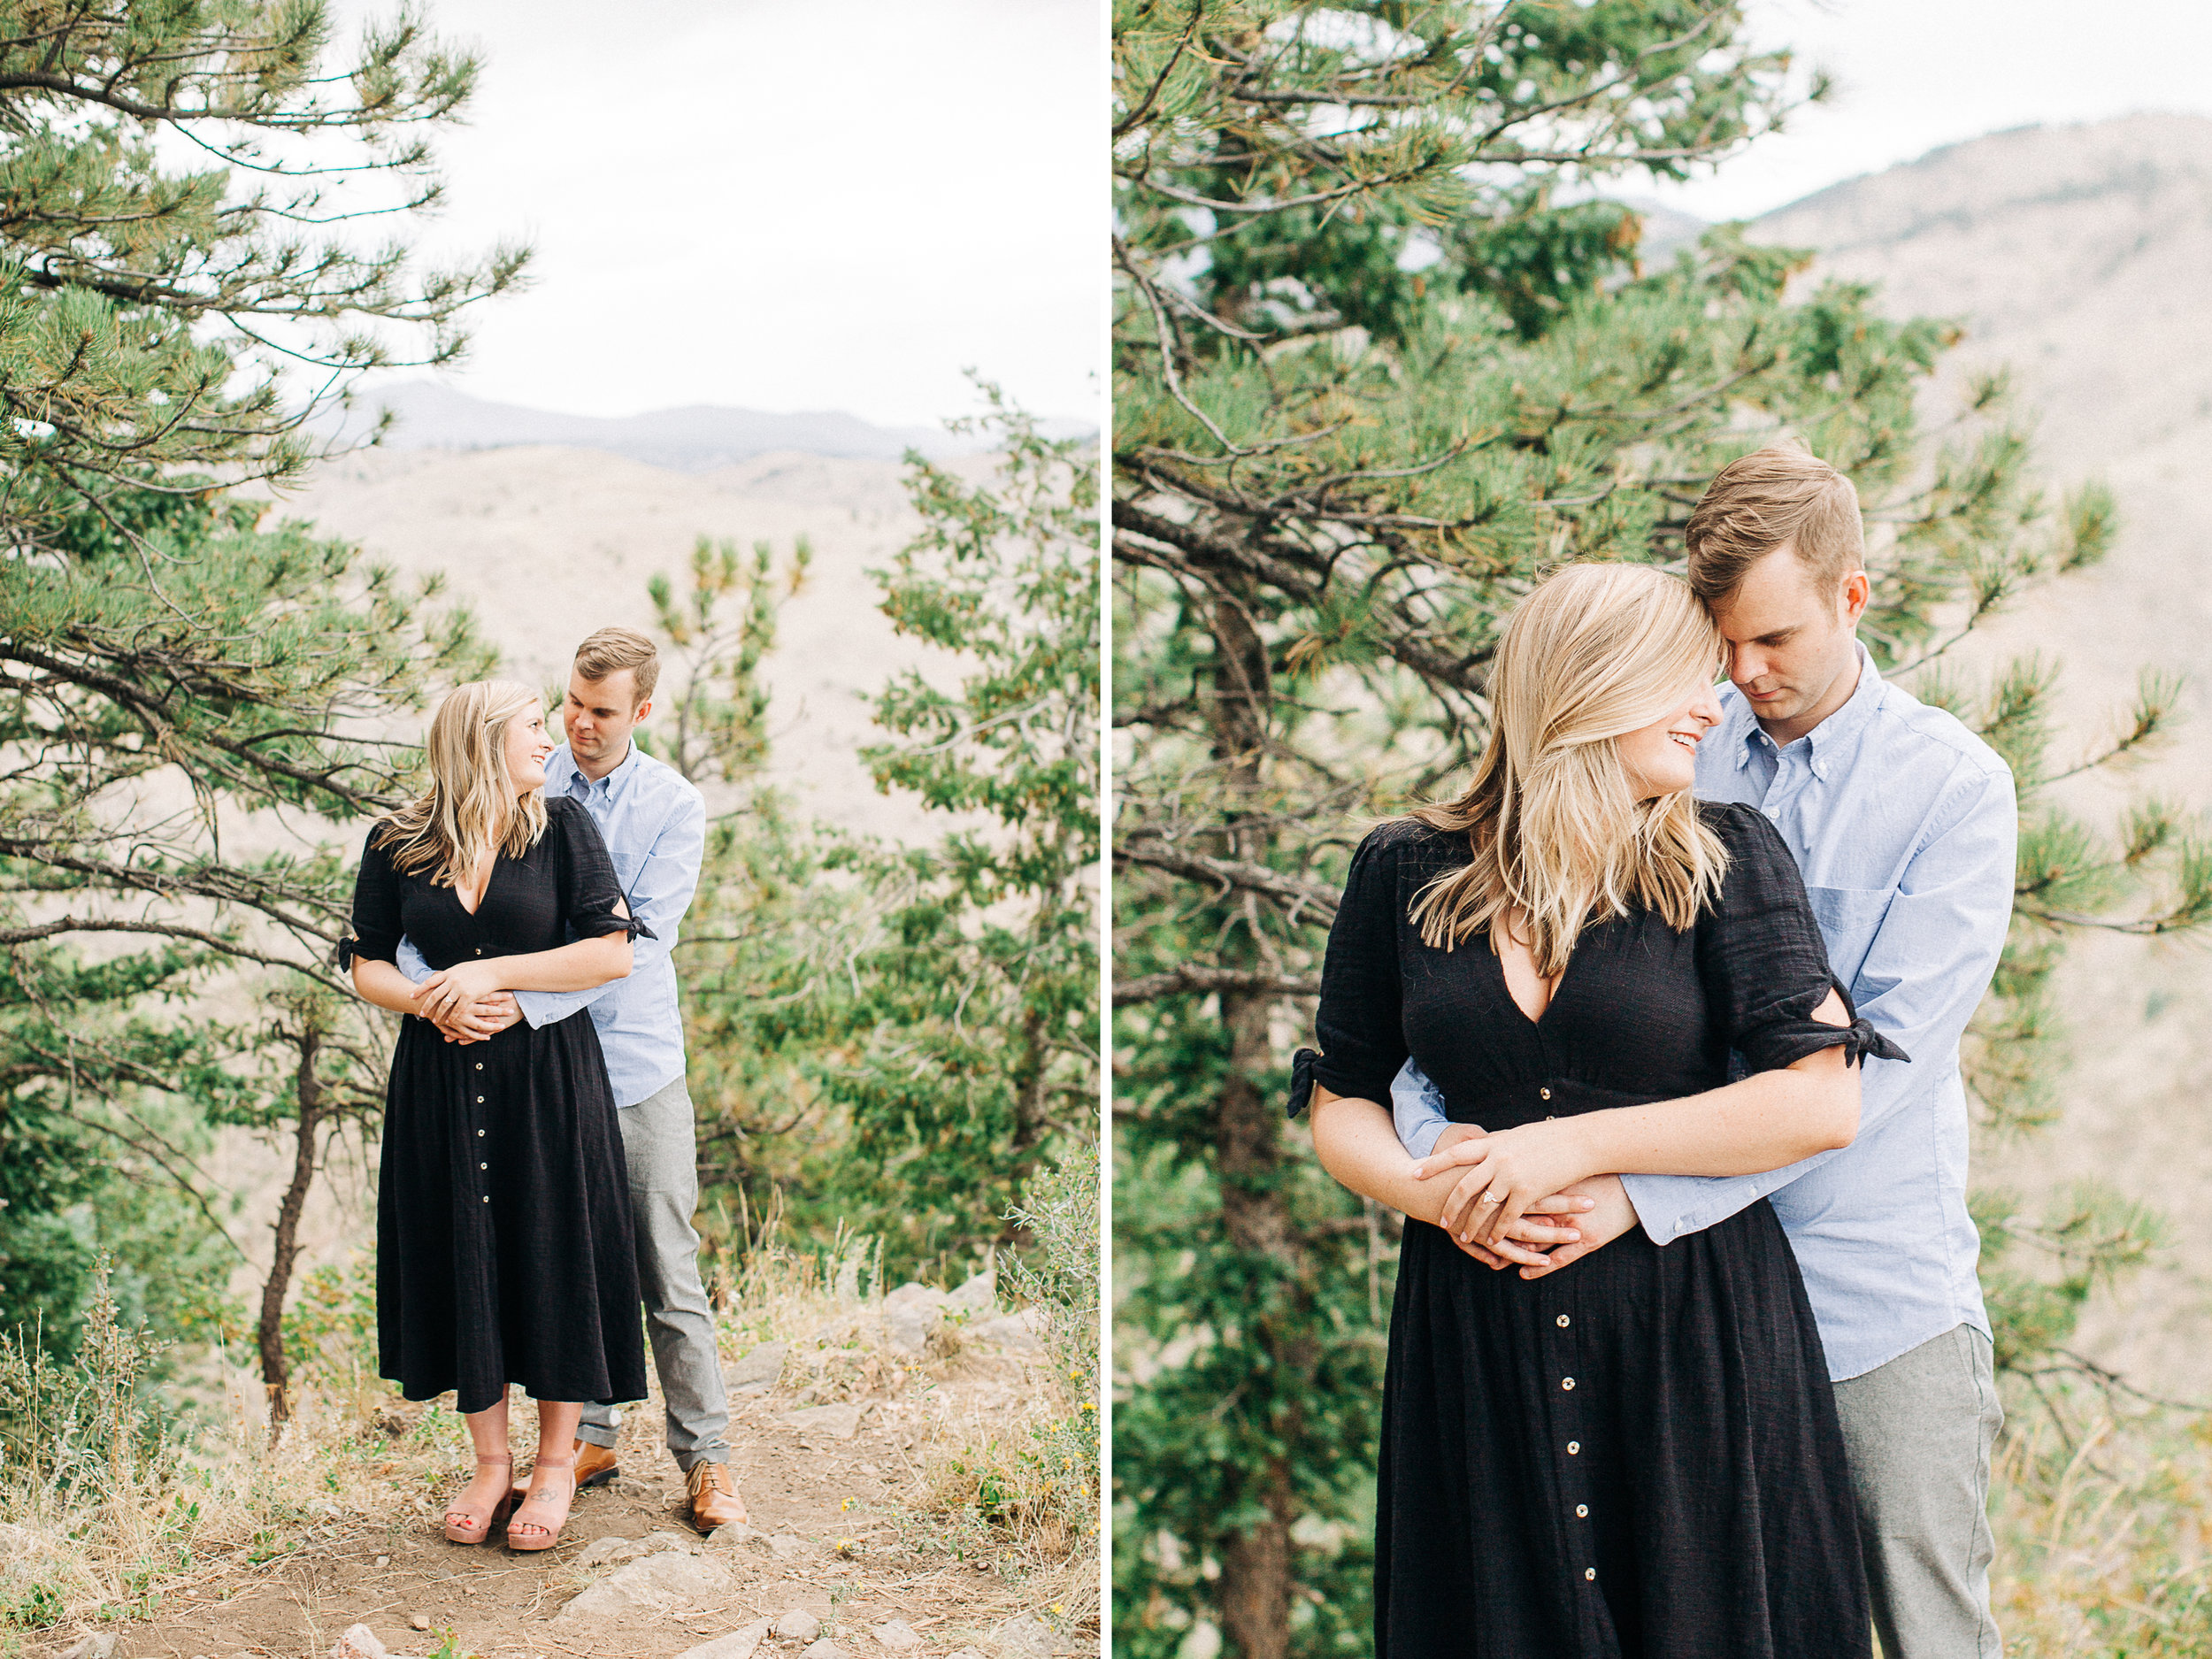 Dorothy_Louise_Photography_Gennie_Sean_Engagement3.jpg